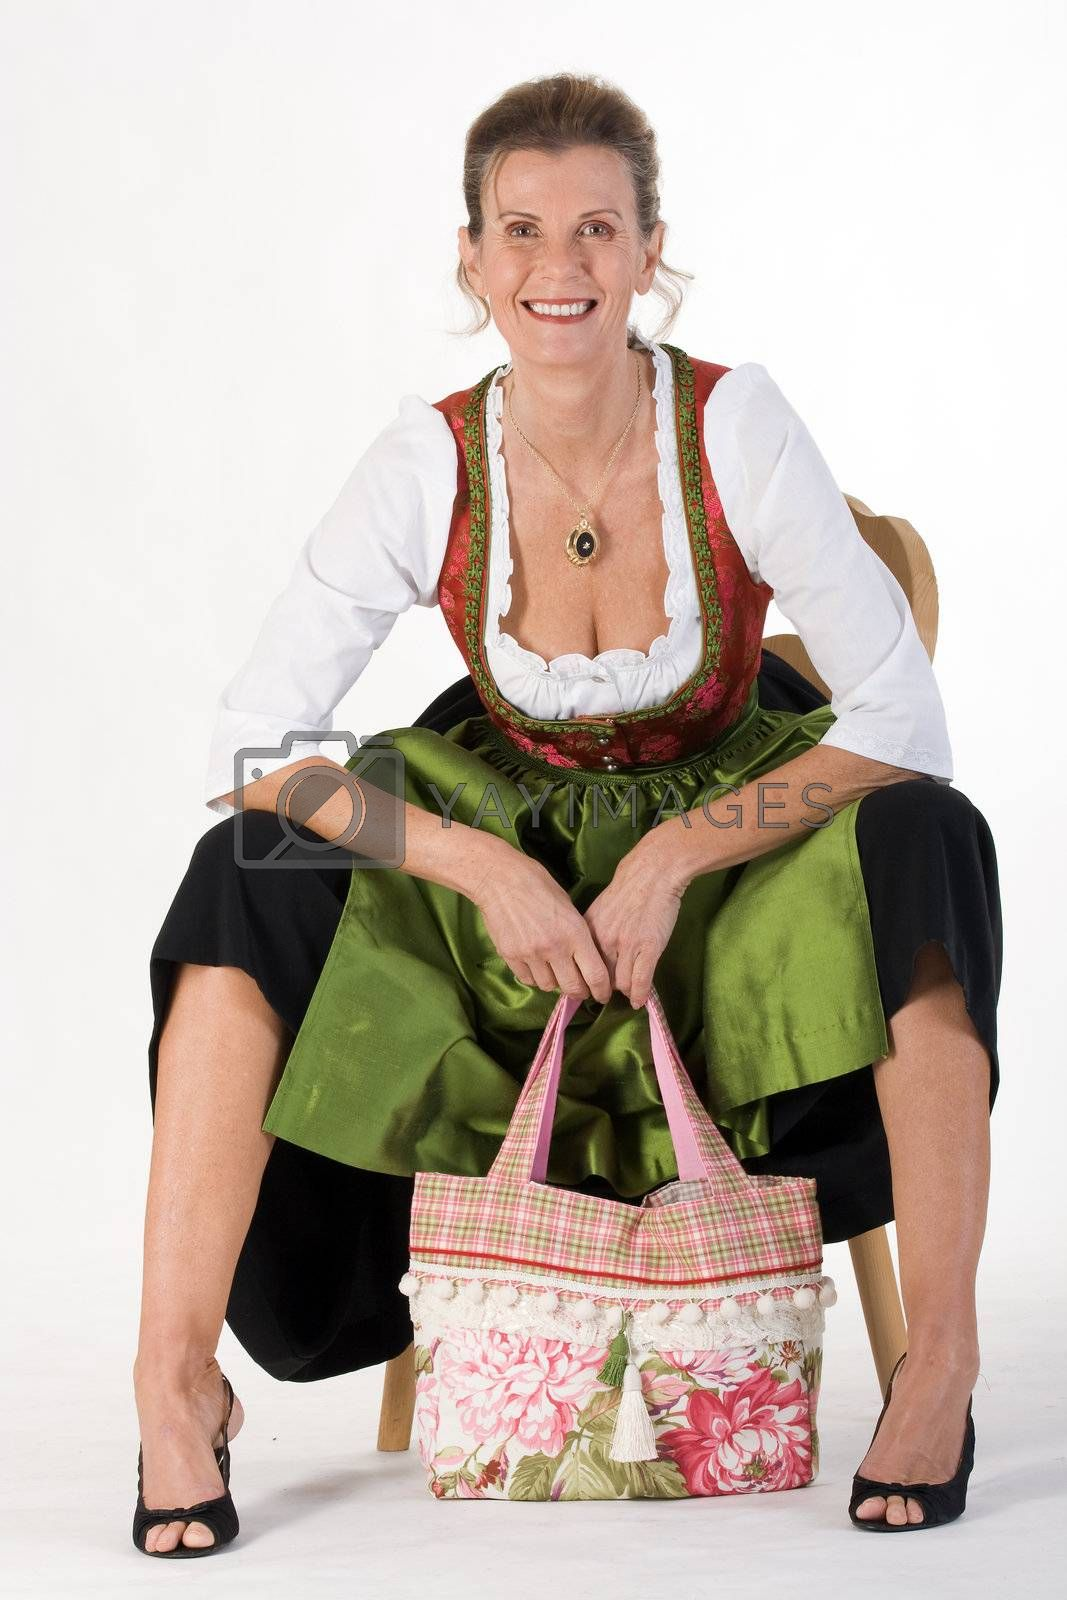 elderly woman in Bavarian costume dress with modern bag is sitting on a chair laughing